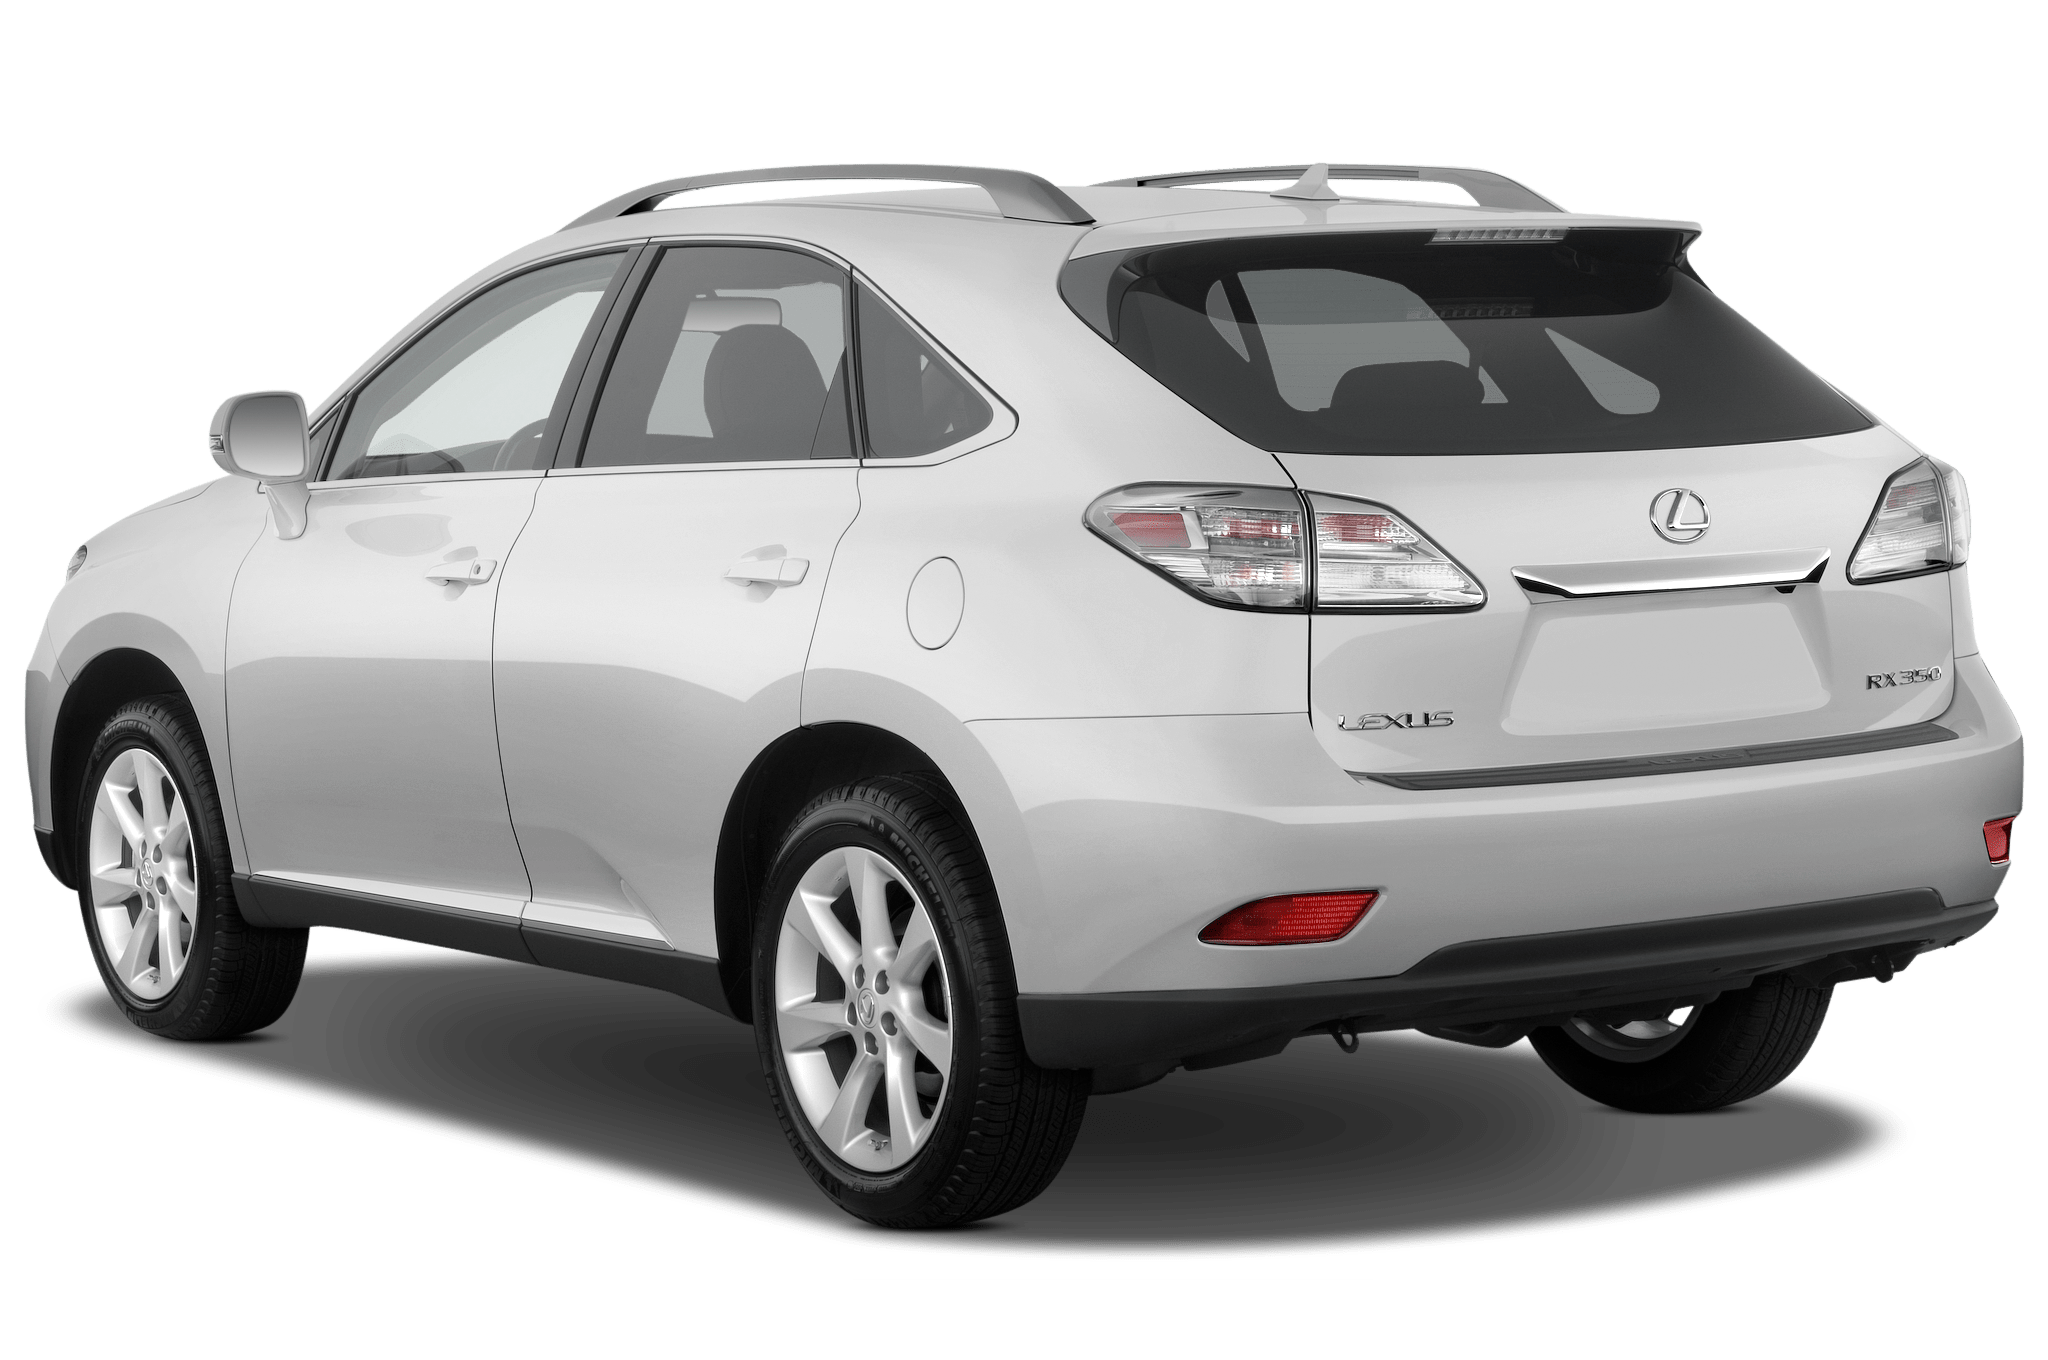 Recall Roundup Lexus Floor Mat Recall Expanded to 2010 RX350 and